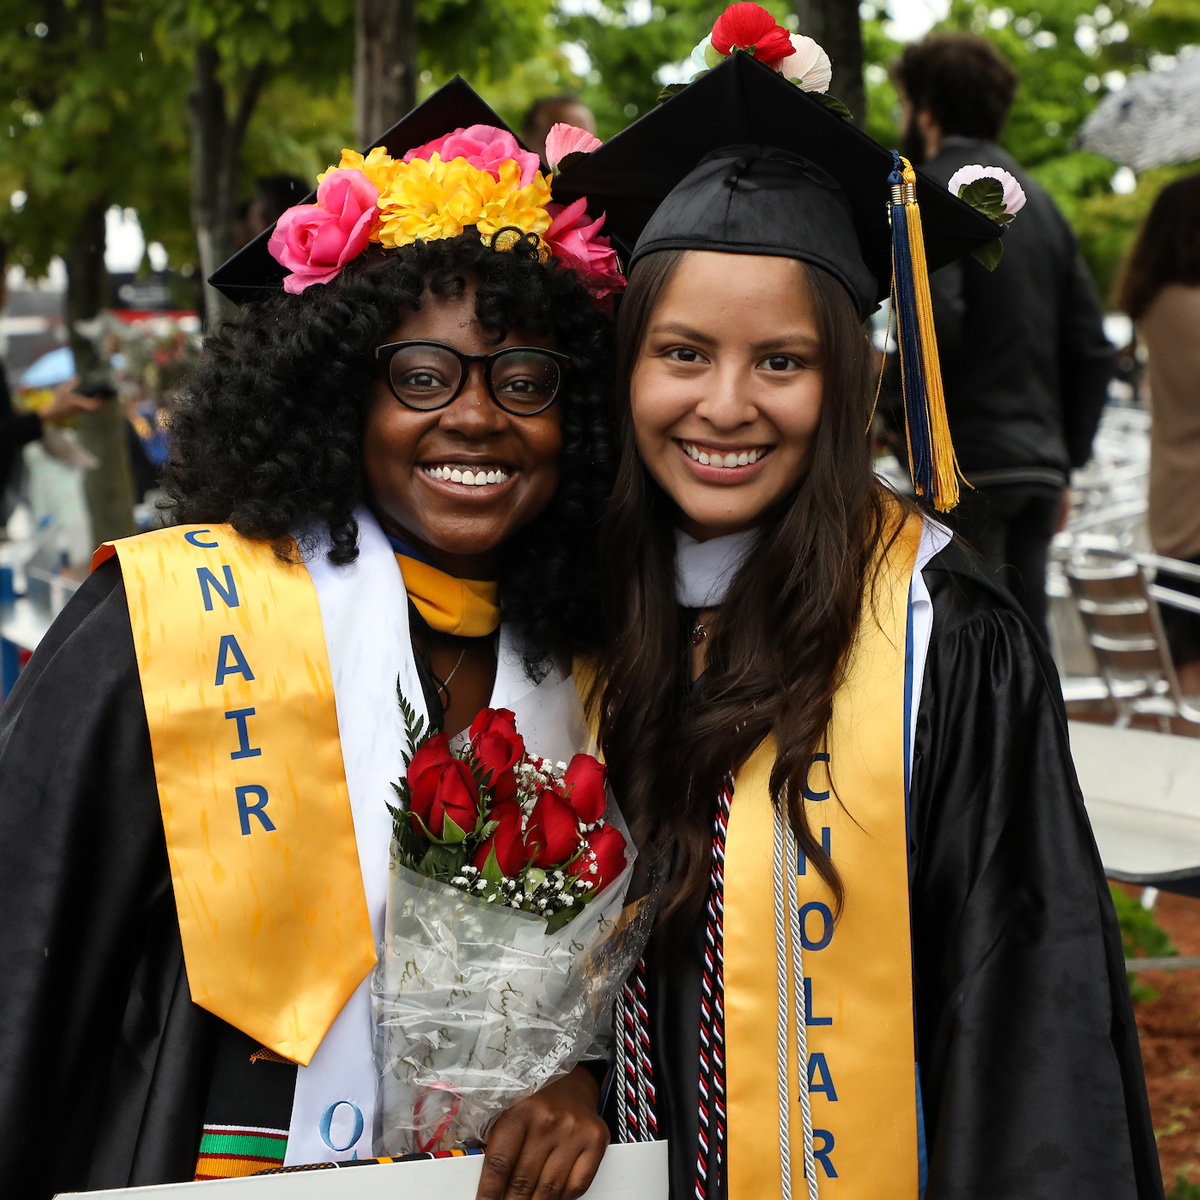 Arly posing for a photo with a friend wearing her cap and gown following Commencement.